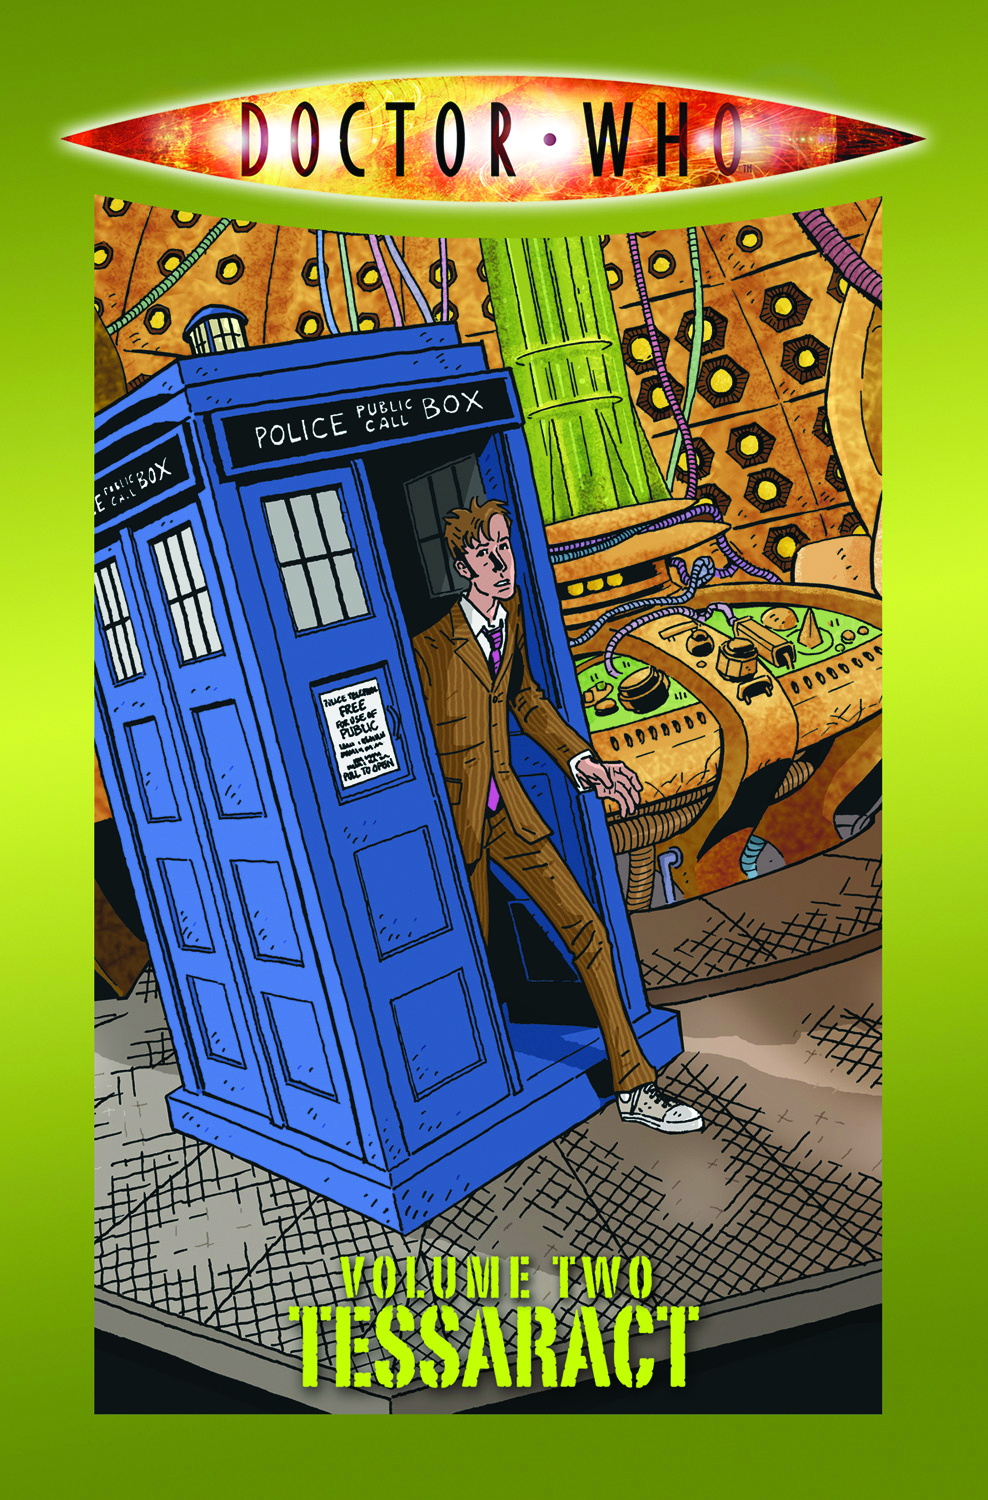 DOCTOR WHO 1 TP VOL 02 TESSERACT